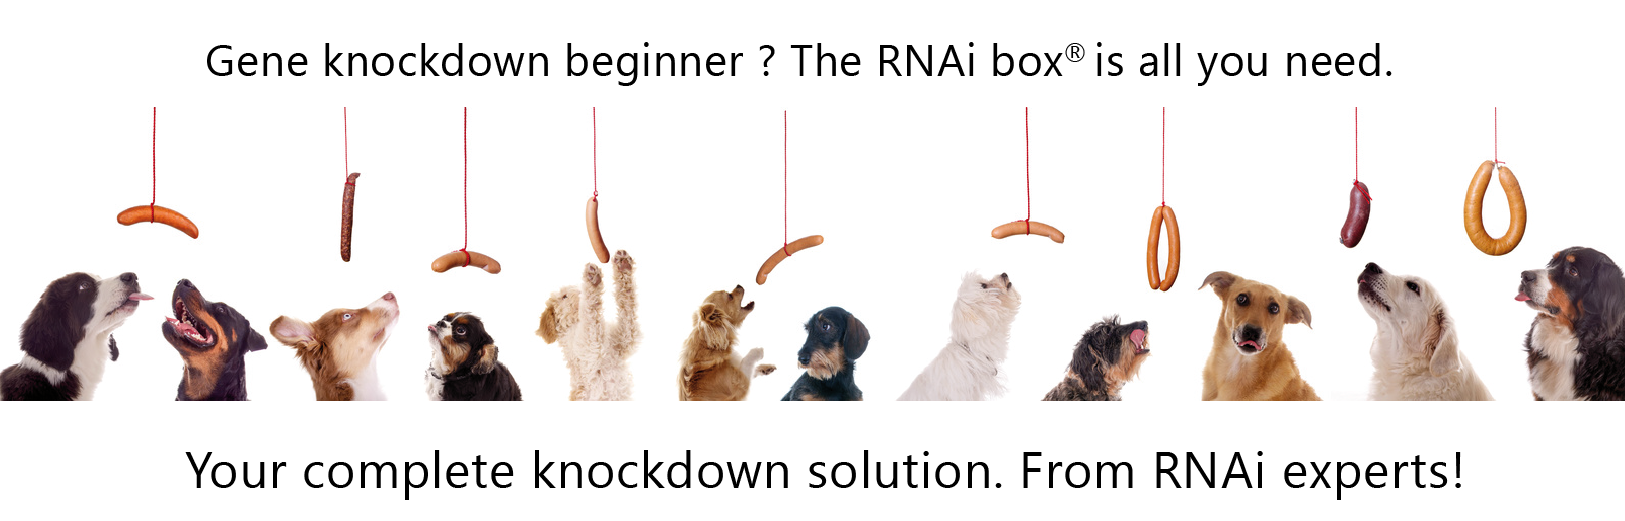 gene knockdown beginner: the rnai-box is all you need. your complete knockdown solution.